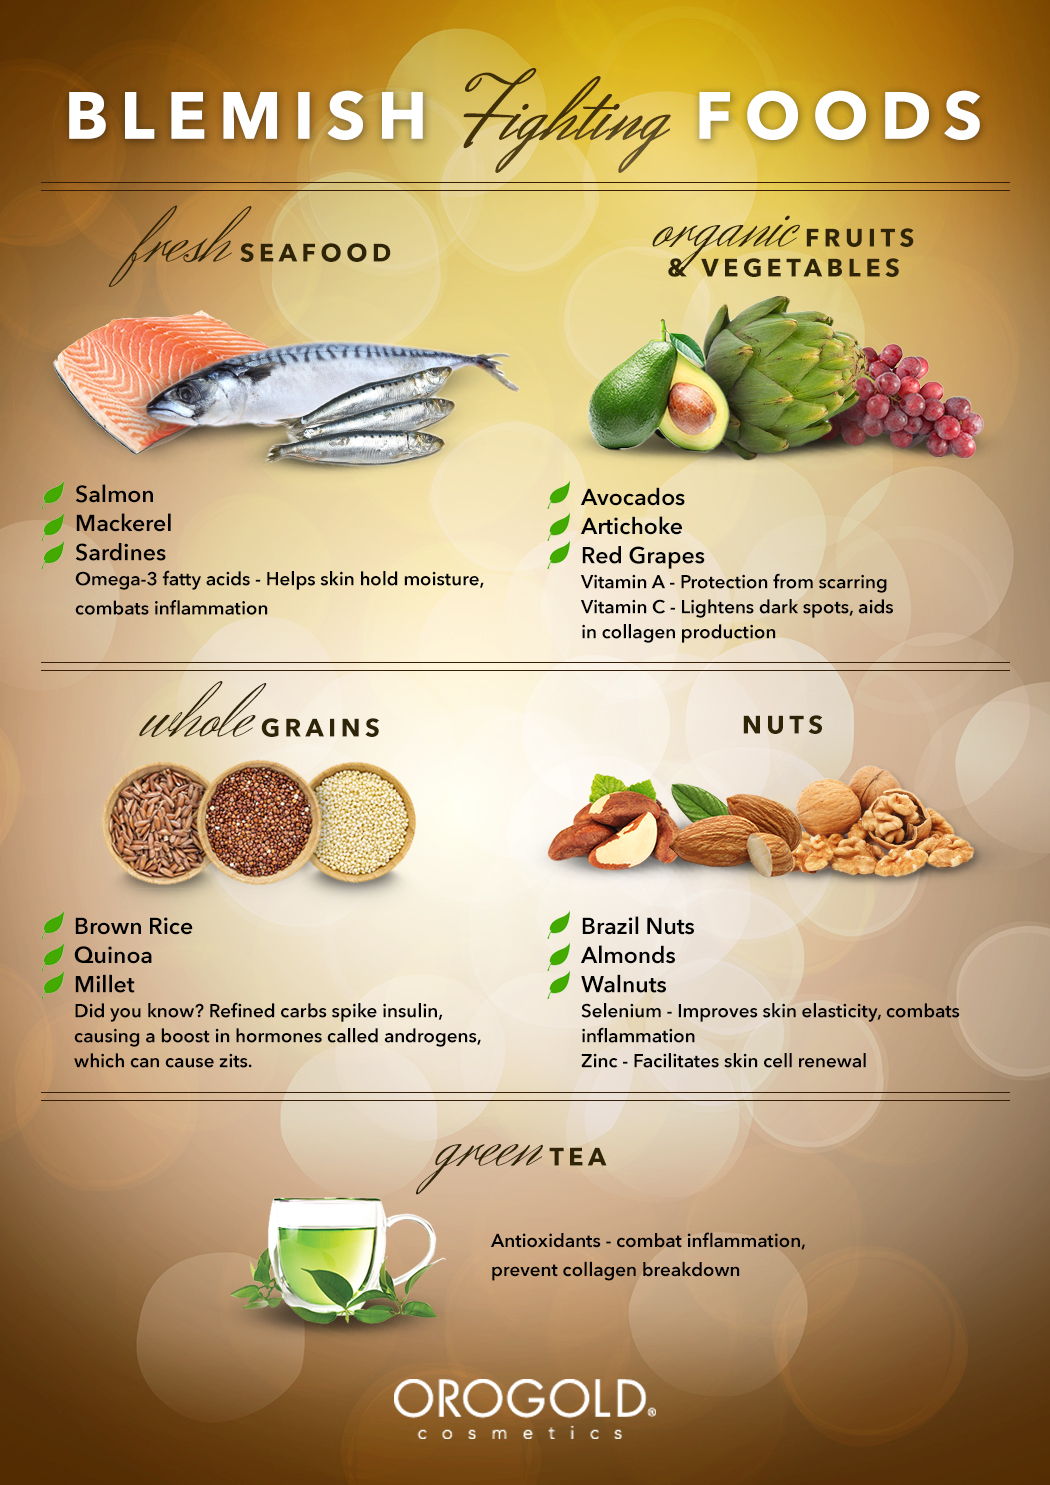 Blemish Fighting Foods Infographic